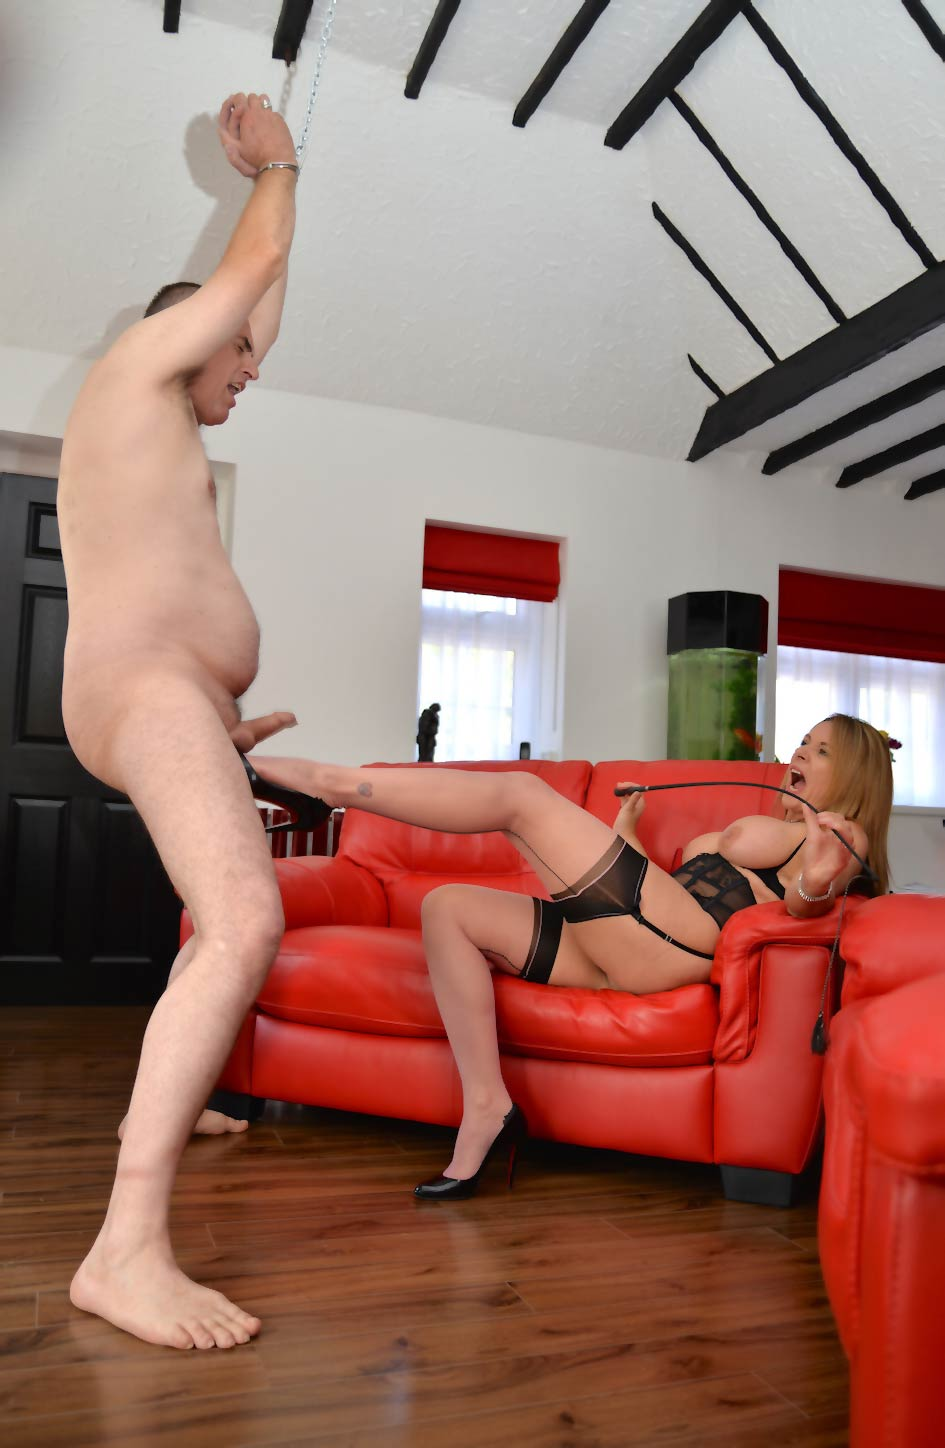 Book a Ball Busting with Mistress Carly at her dungeon located in Ashford, Kent.